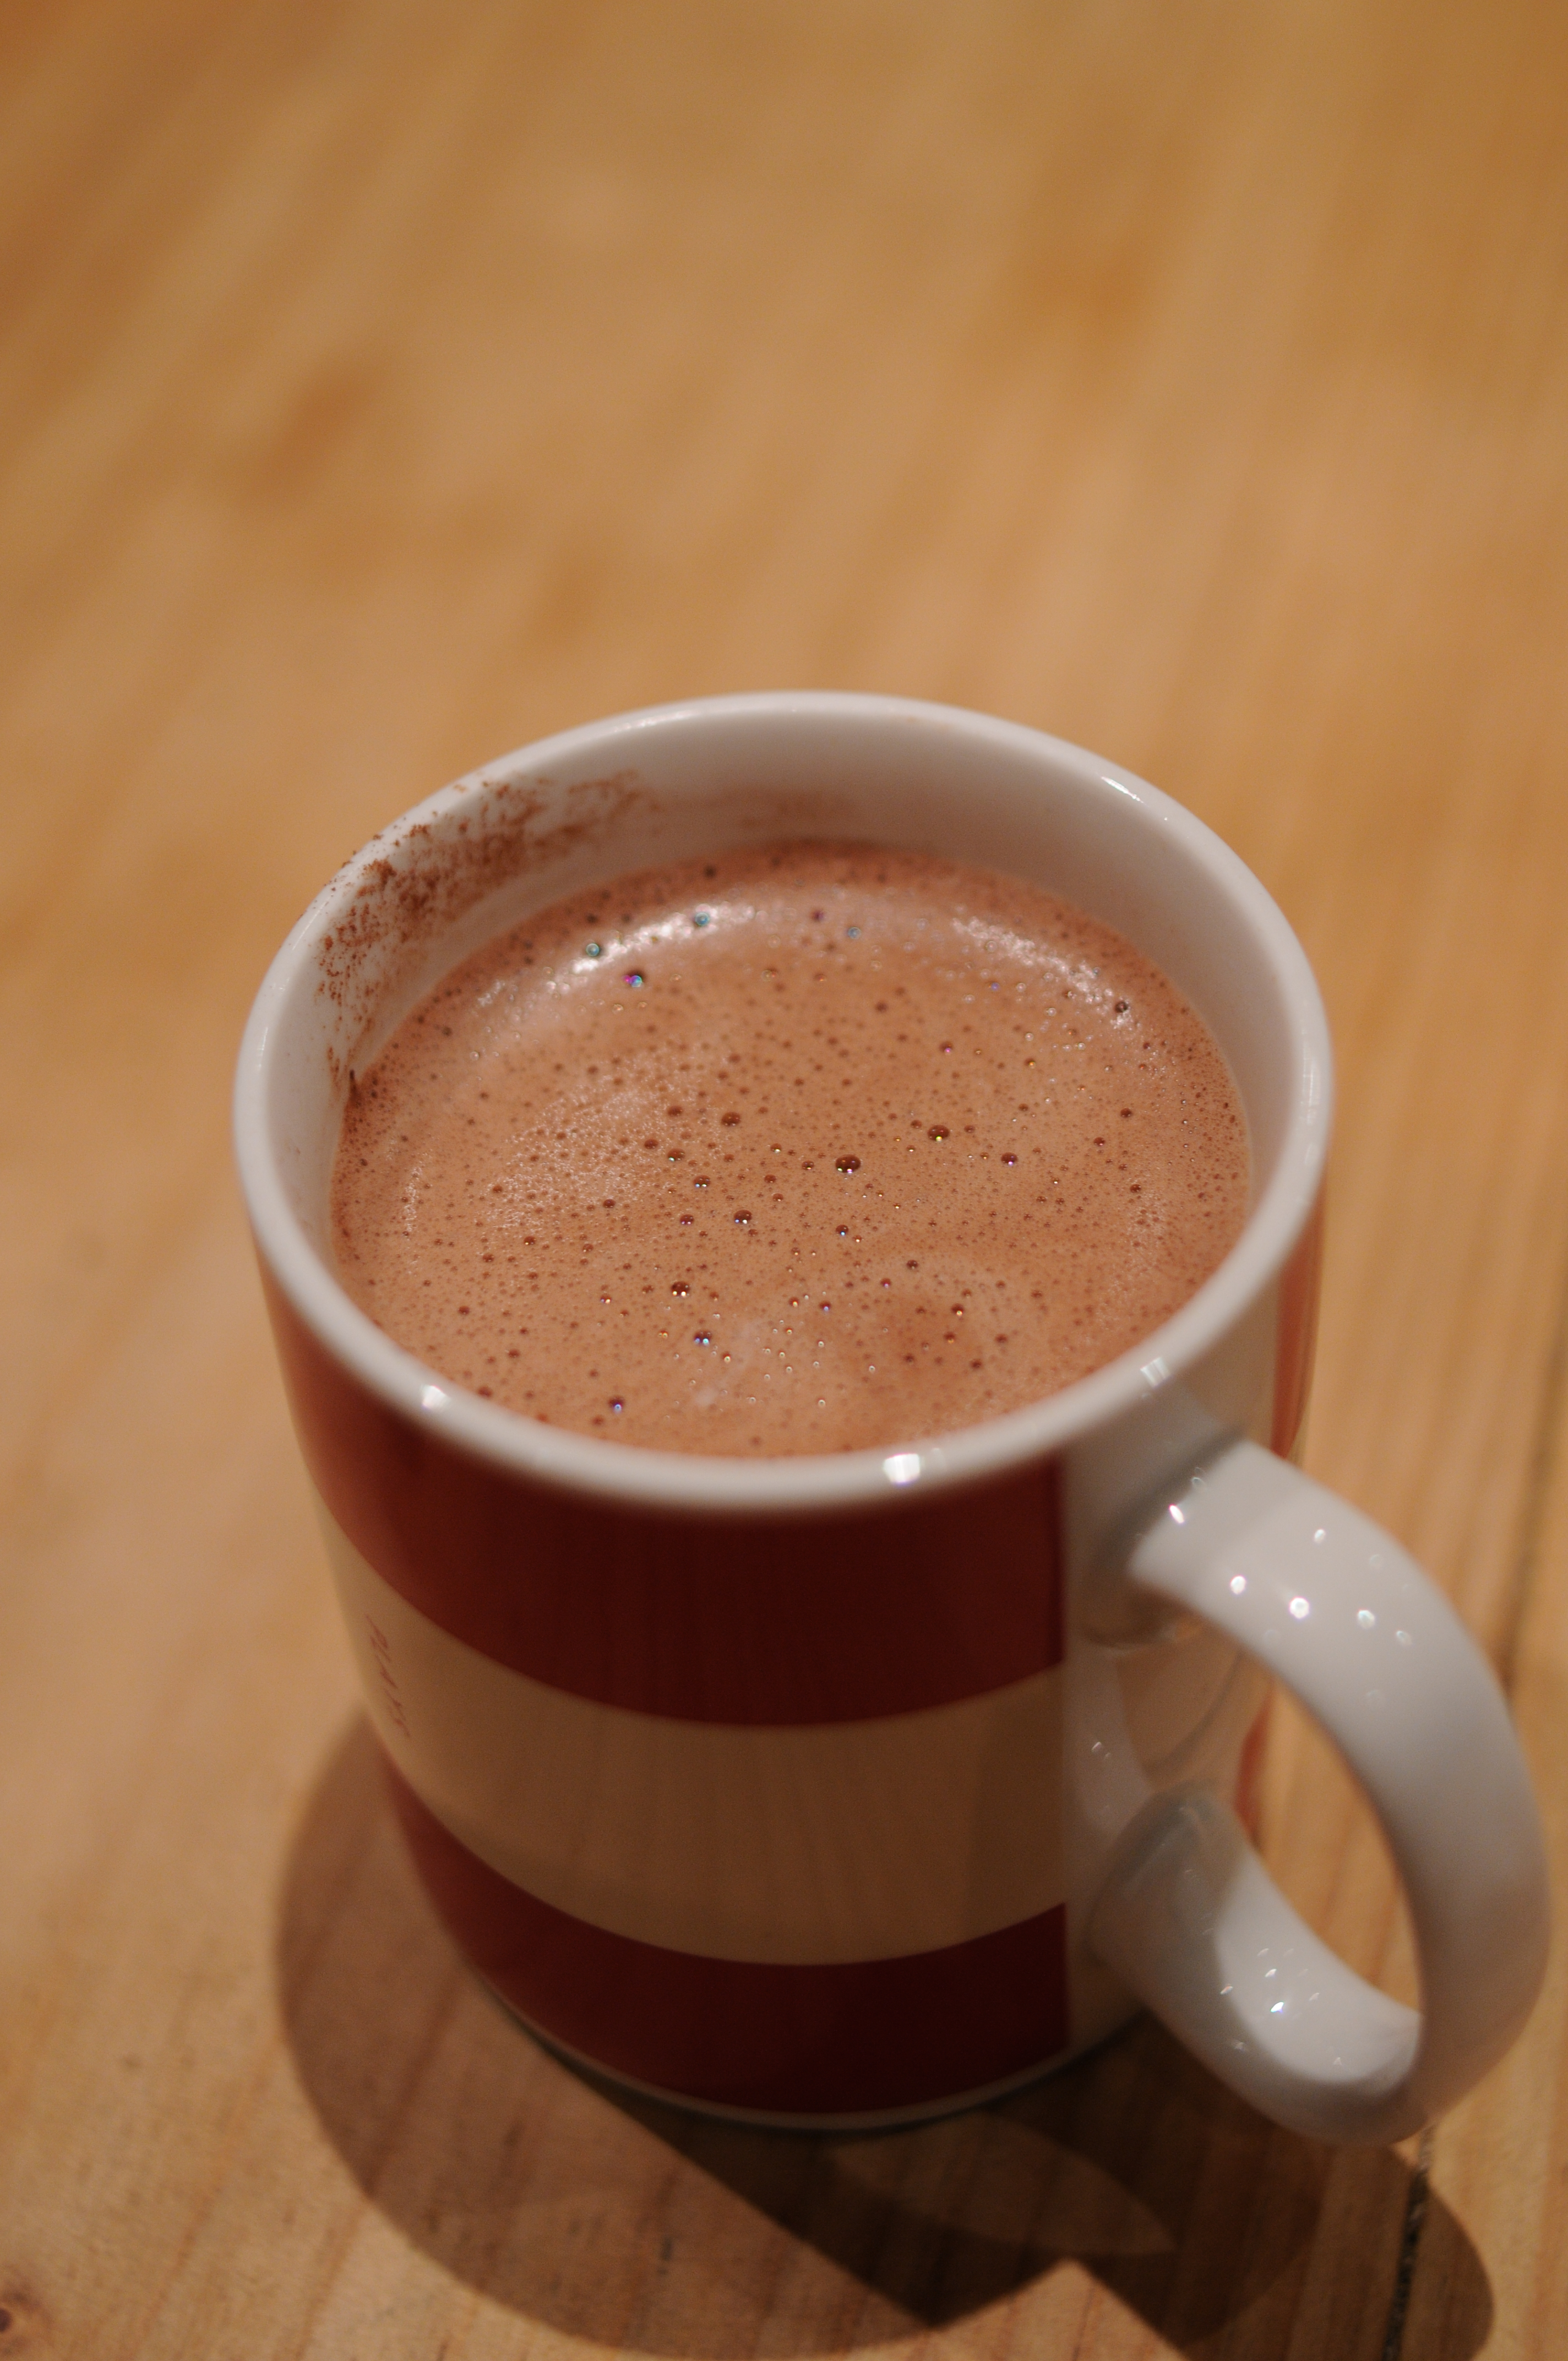 Ecomil – Sugar-free hot chocolate with hazelnut agave drink